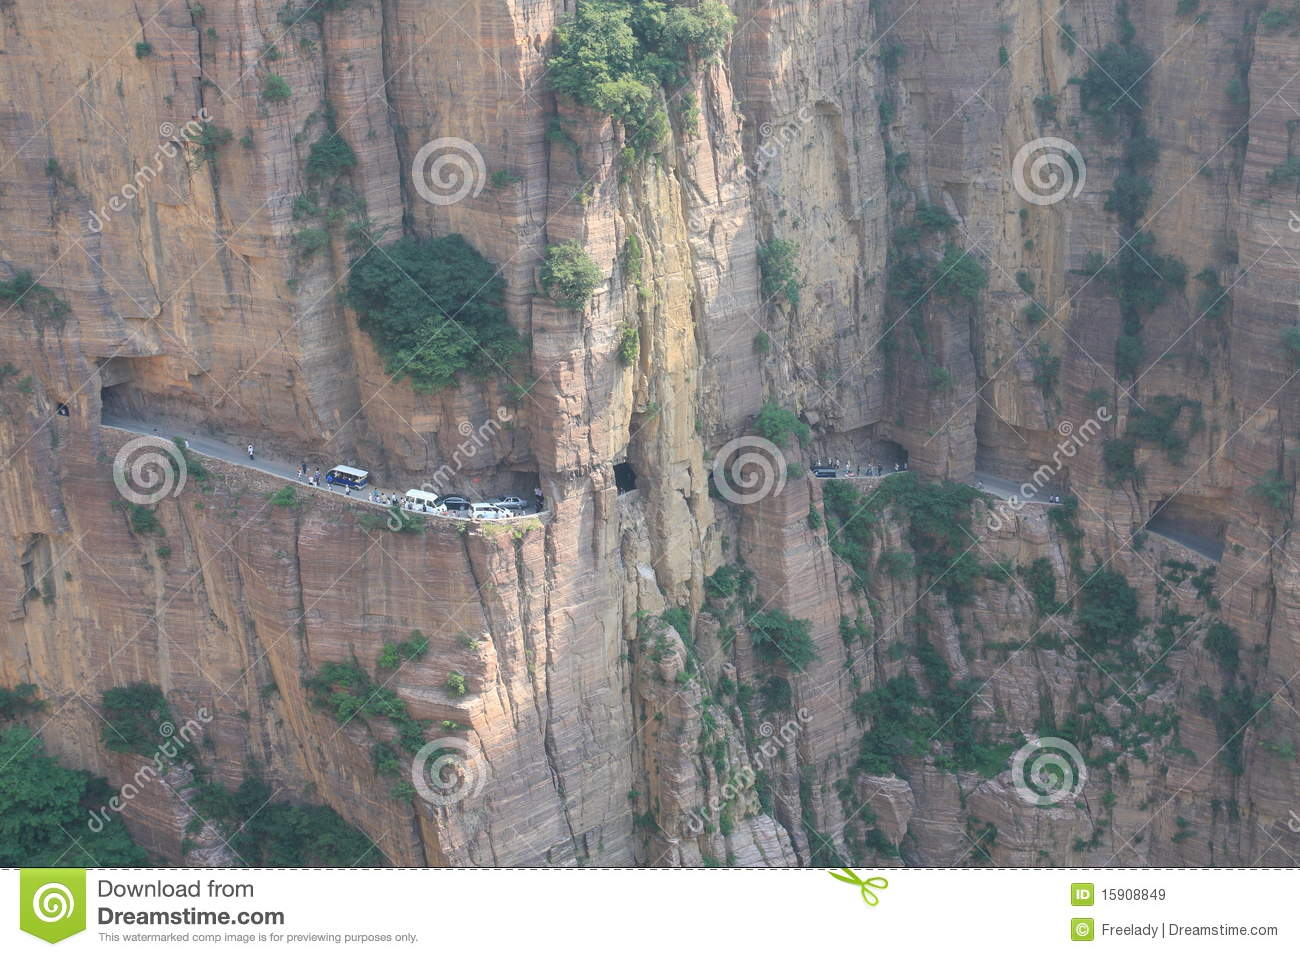 Guoliang Tunnel in Henan province of China